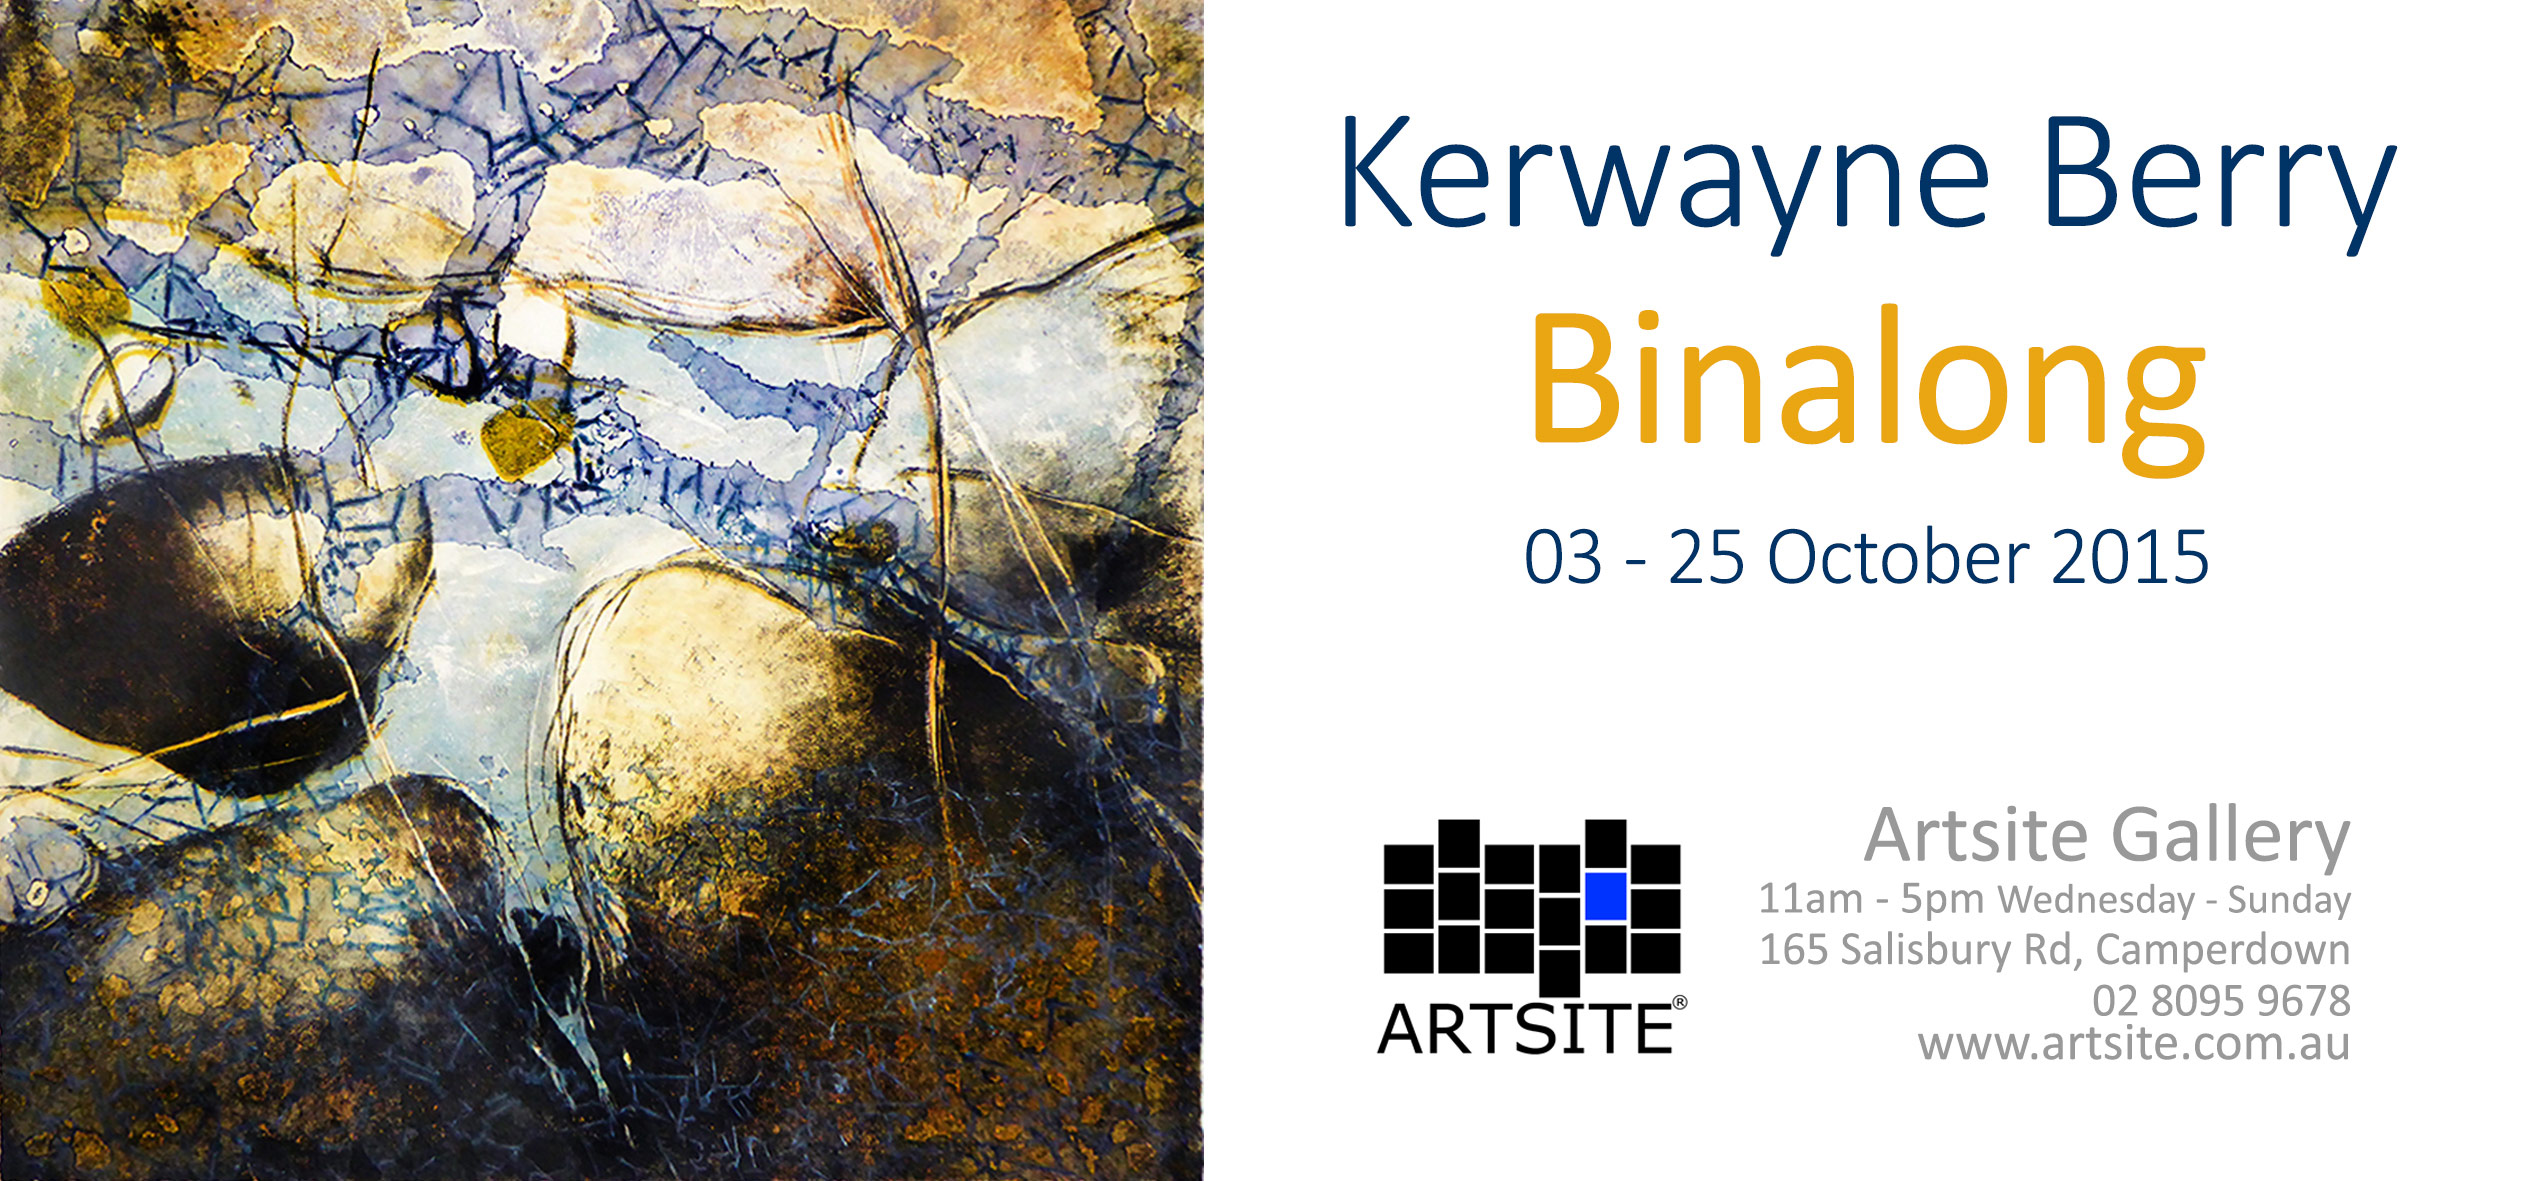 Kerwayne Berry's first Solo Exhibition at Artsite Gallery October 2015